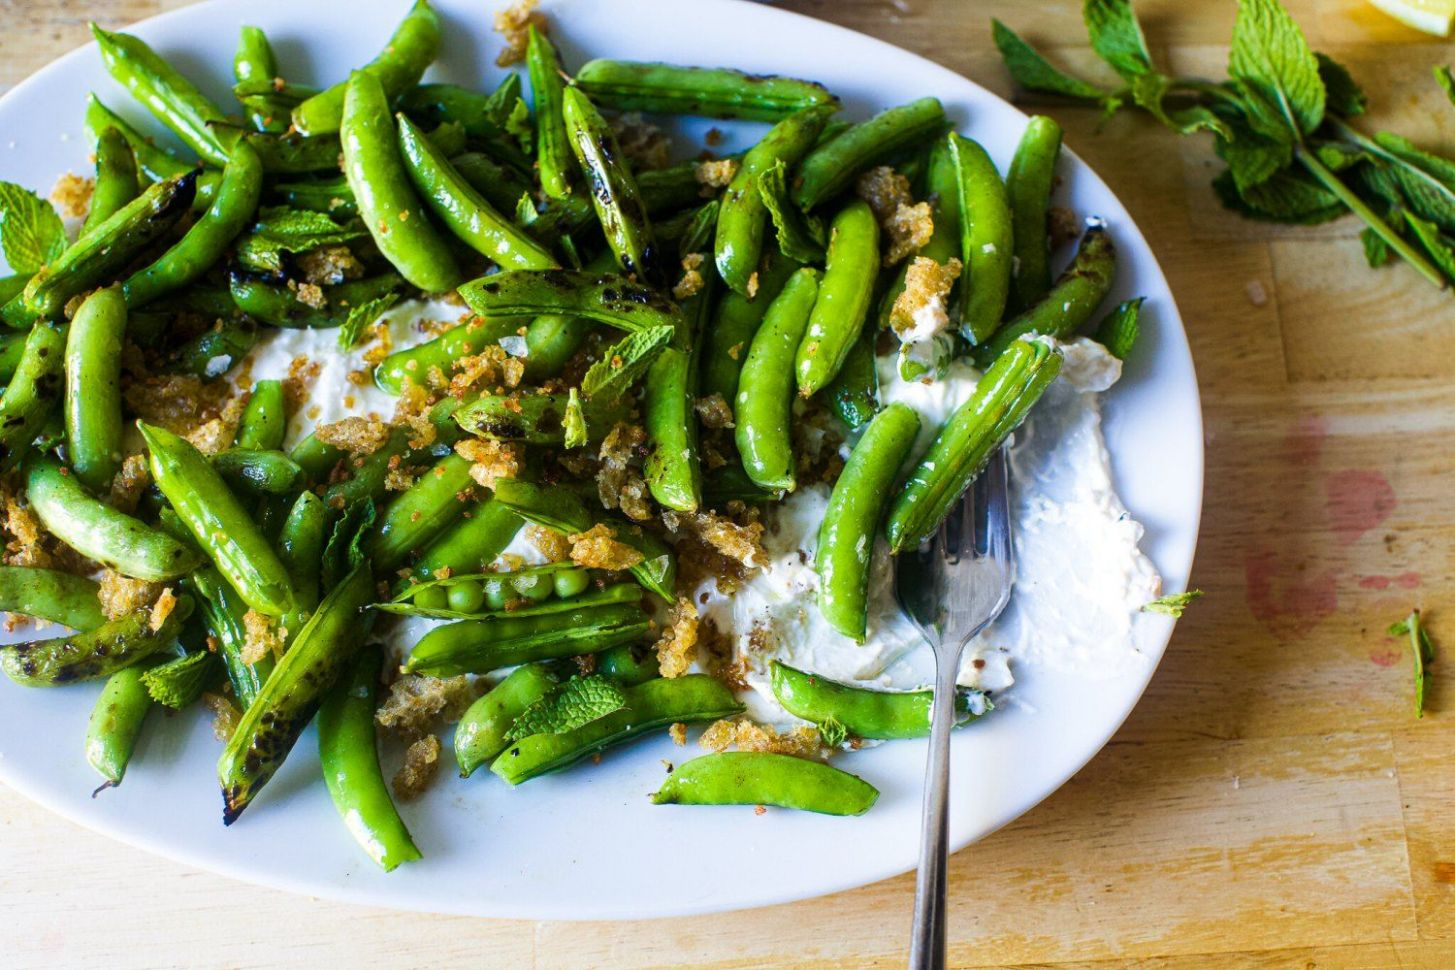 Burrata with Charred and Raw Sugar Snap Peas - Summer Recipes Smitten Kitchen